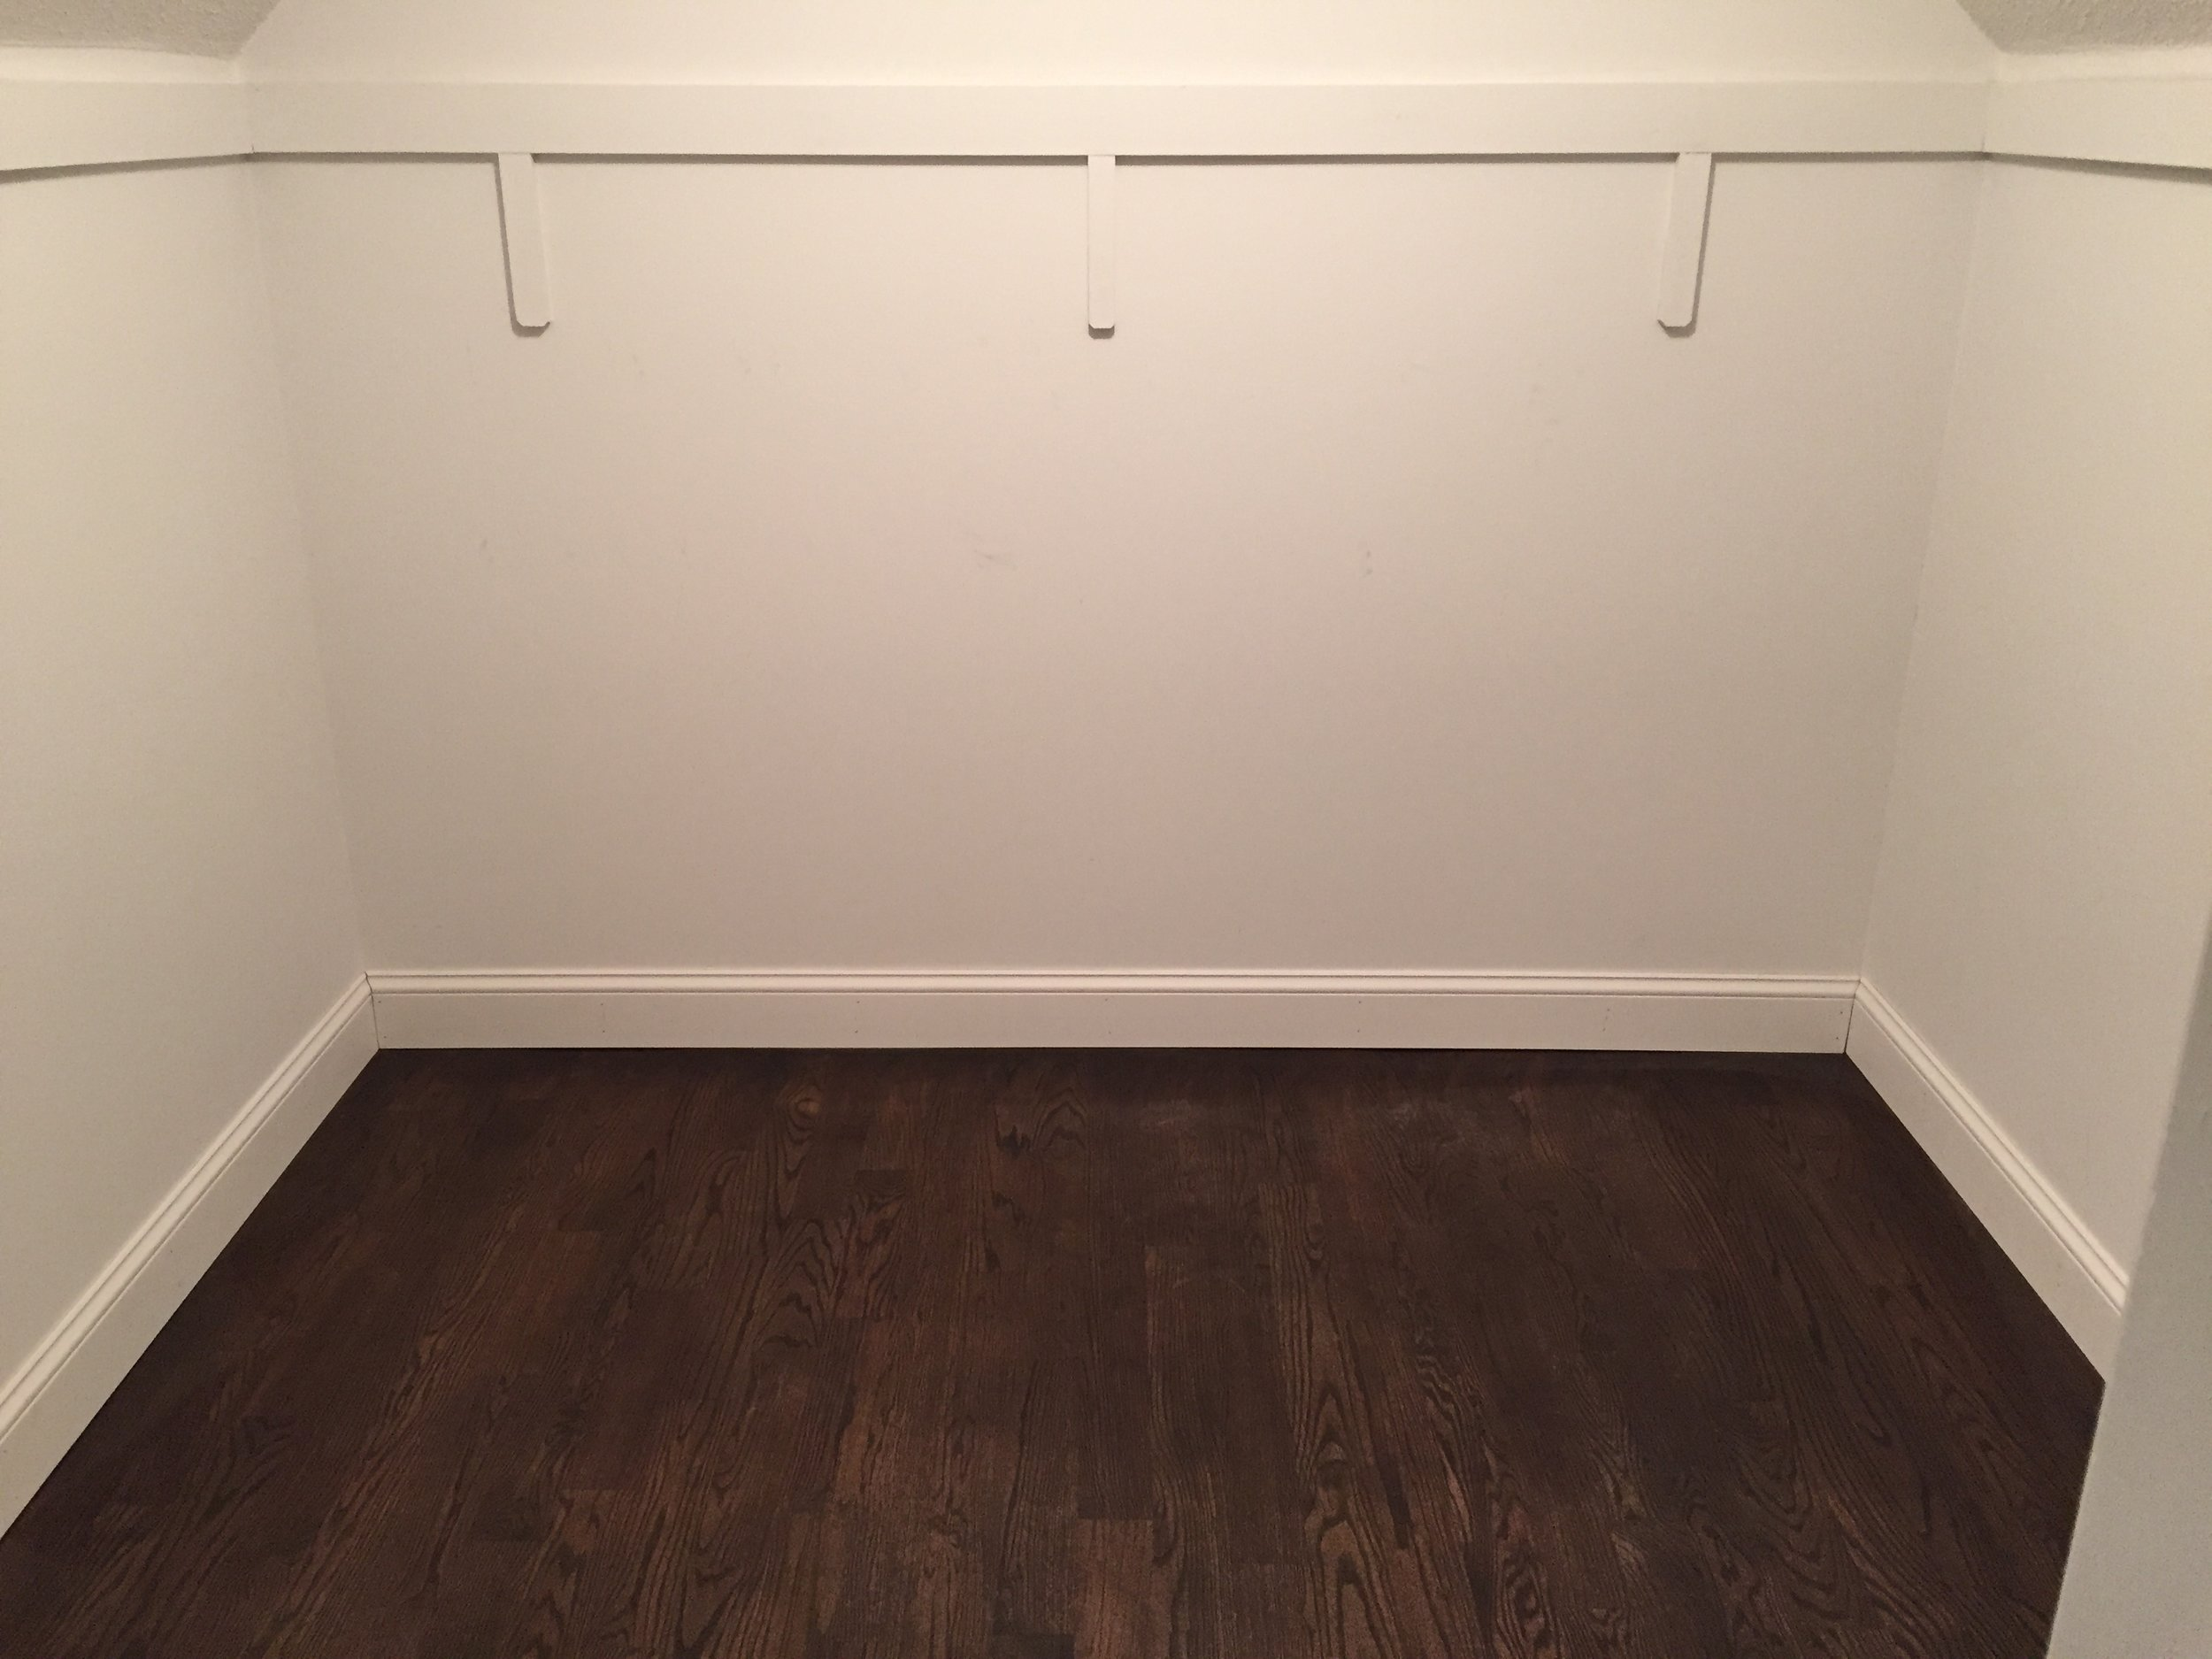 FINISHED - Red Oak - 3 coats of Minwax Jacobean 2750 with Satin Poly & New Baseboard